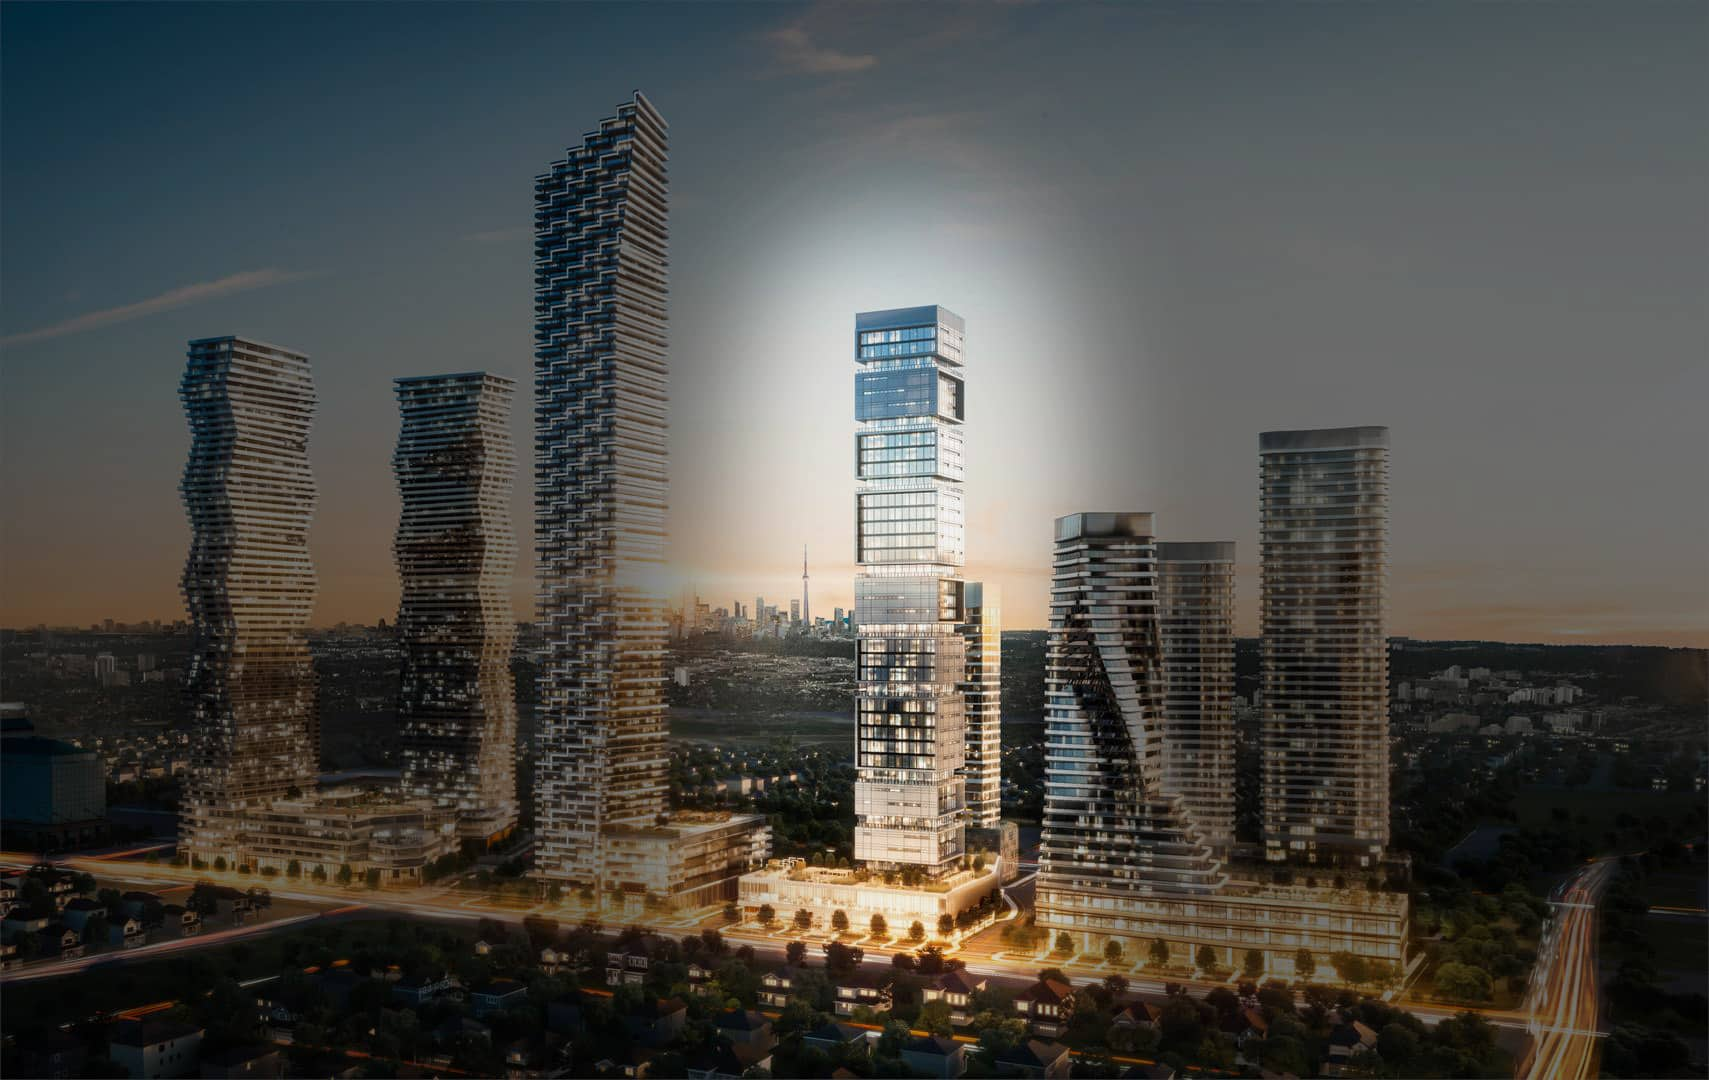 M4 Condos at M CITY Mississauga m4 condos for sale mississauga square one mcity